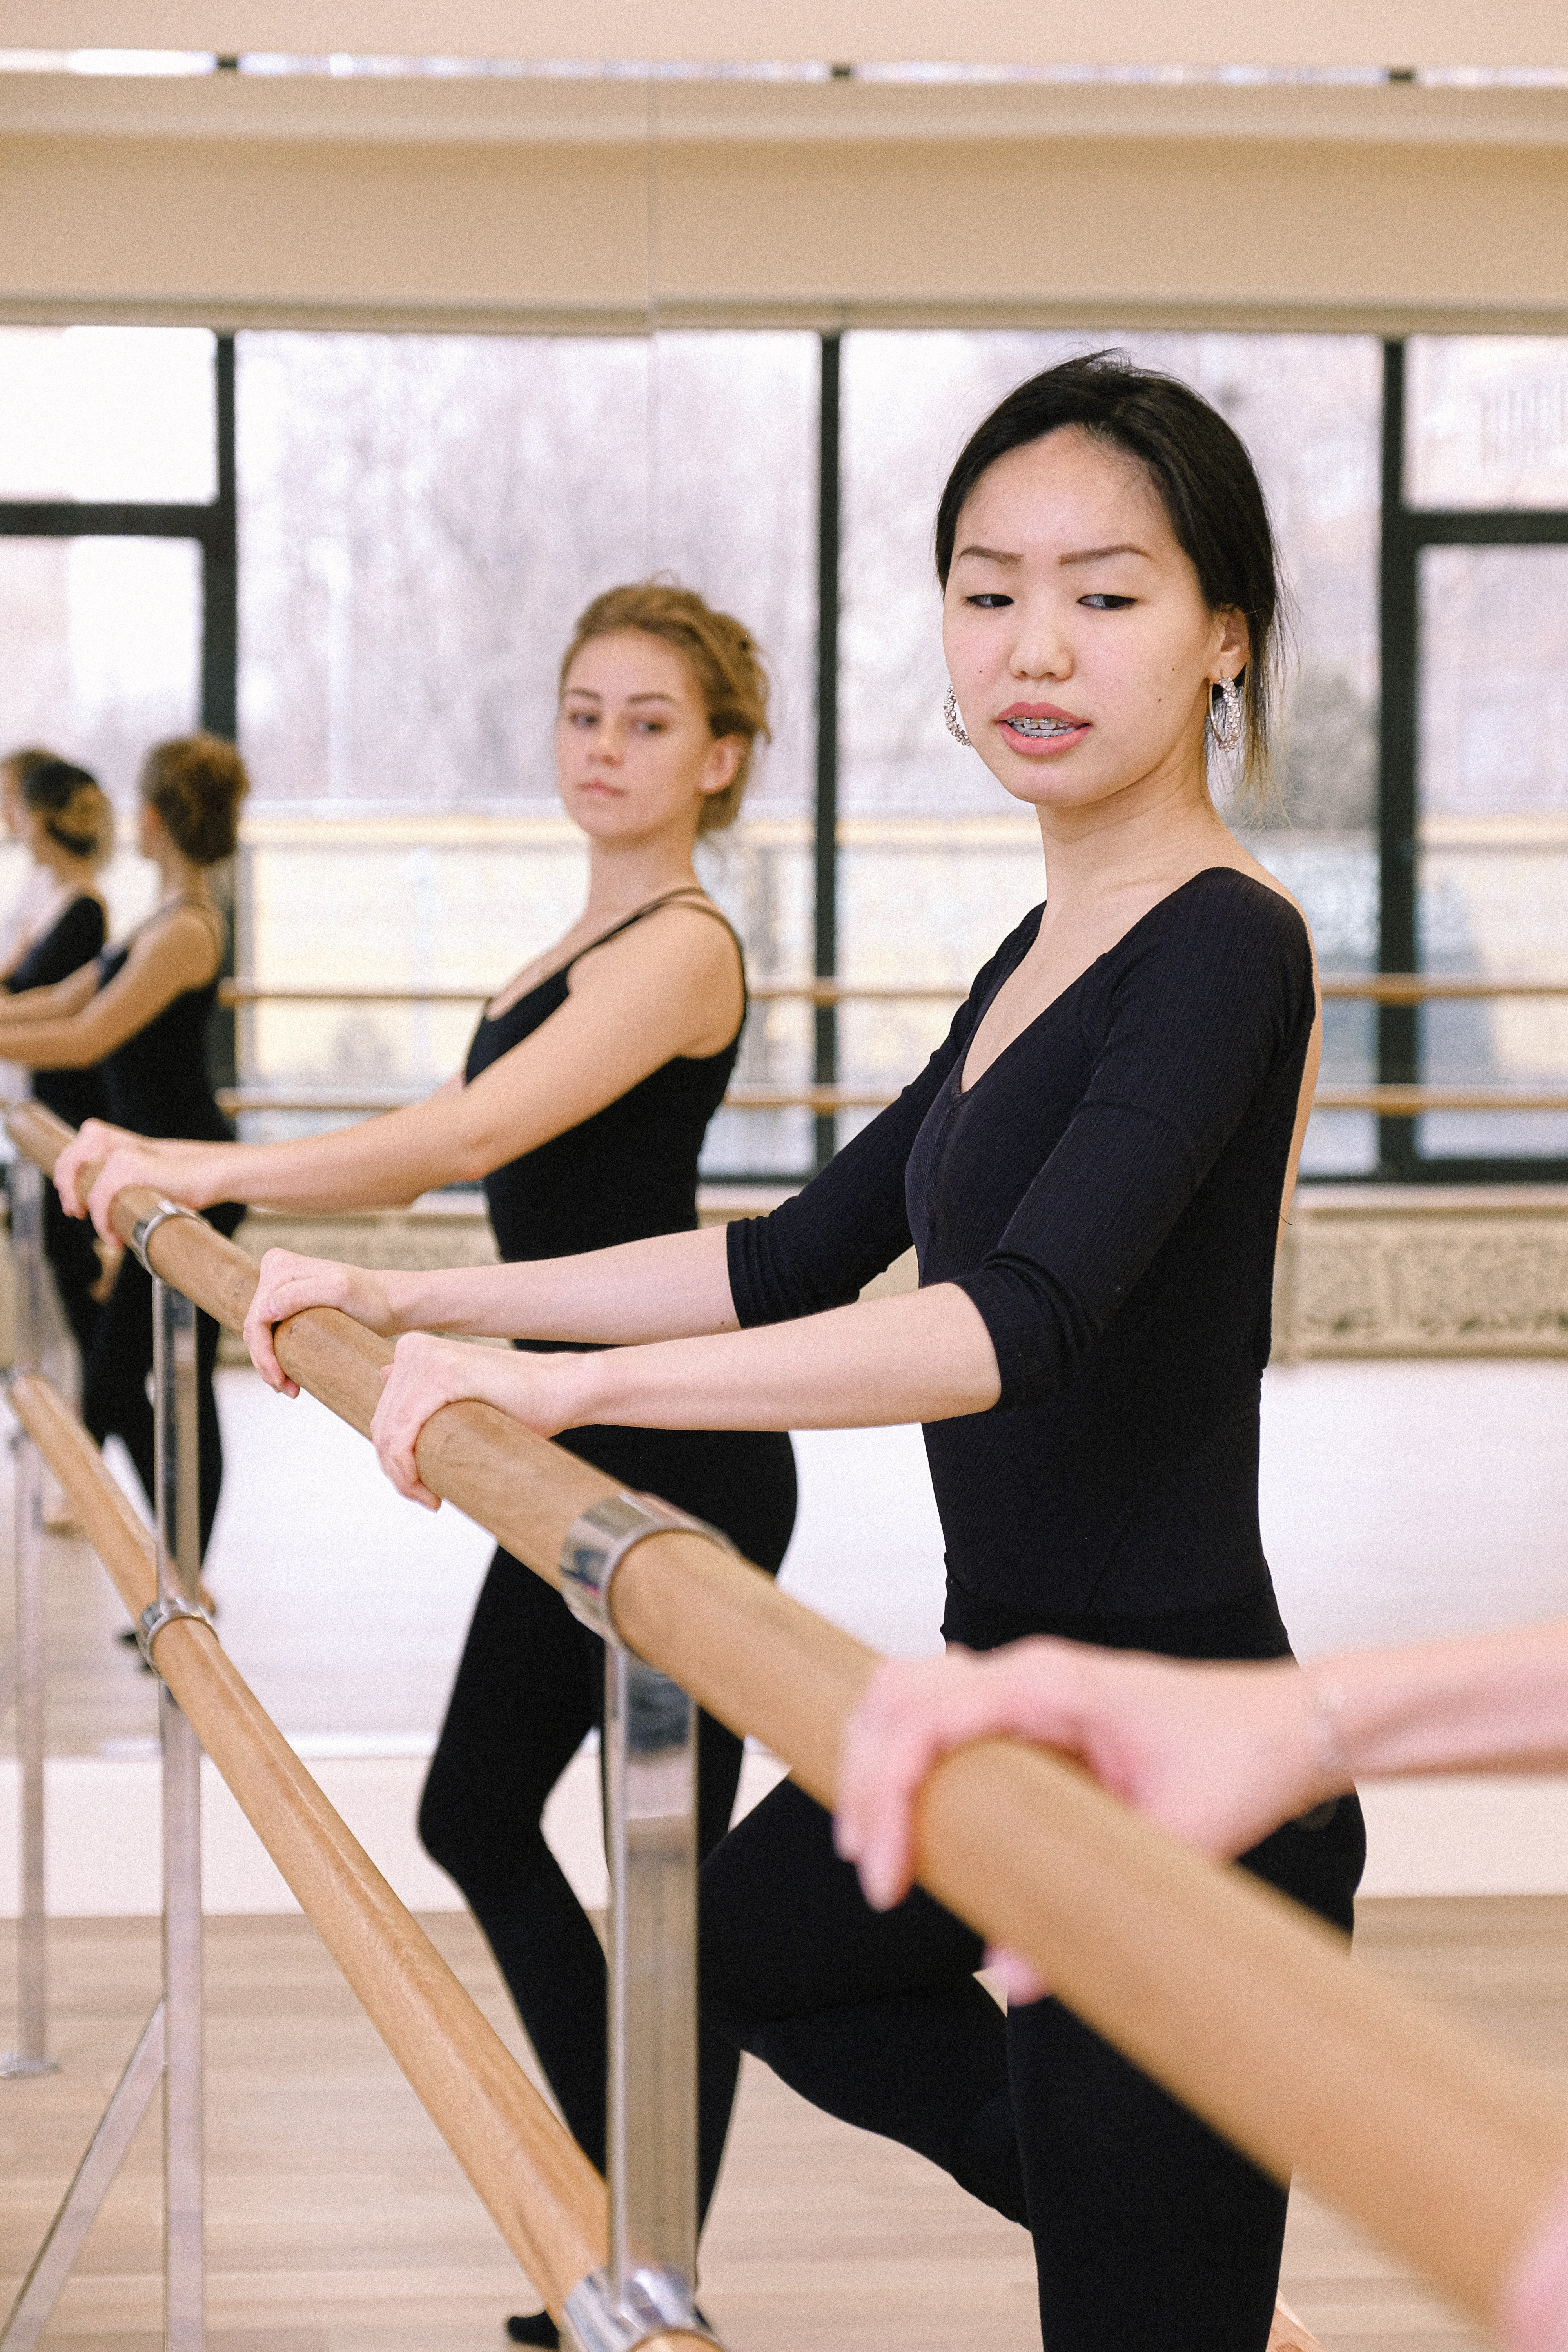 A group of women in black rehearsing ballet   Photo: Pexels